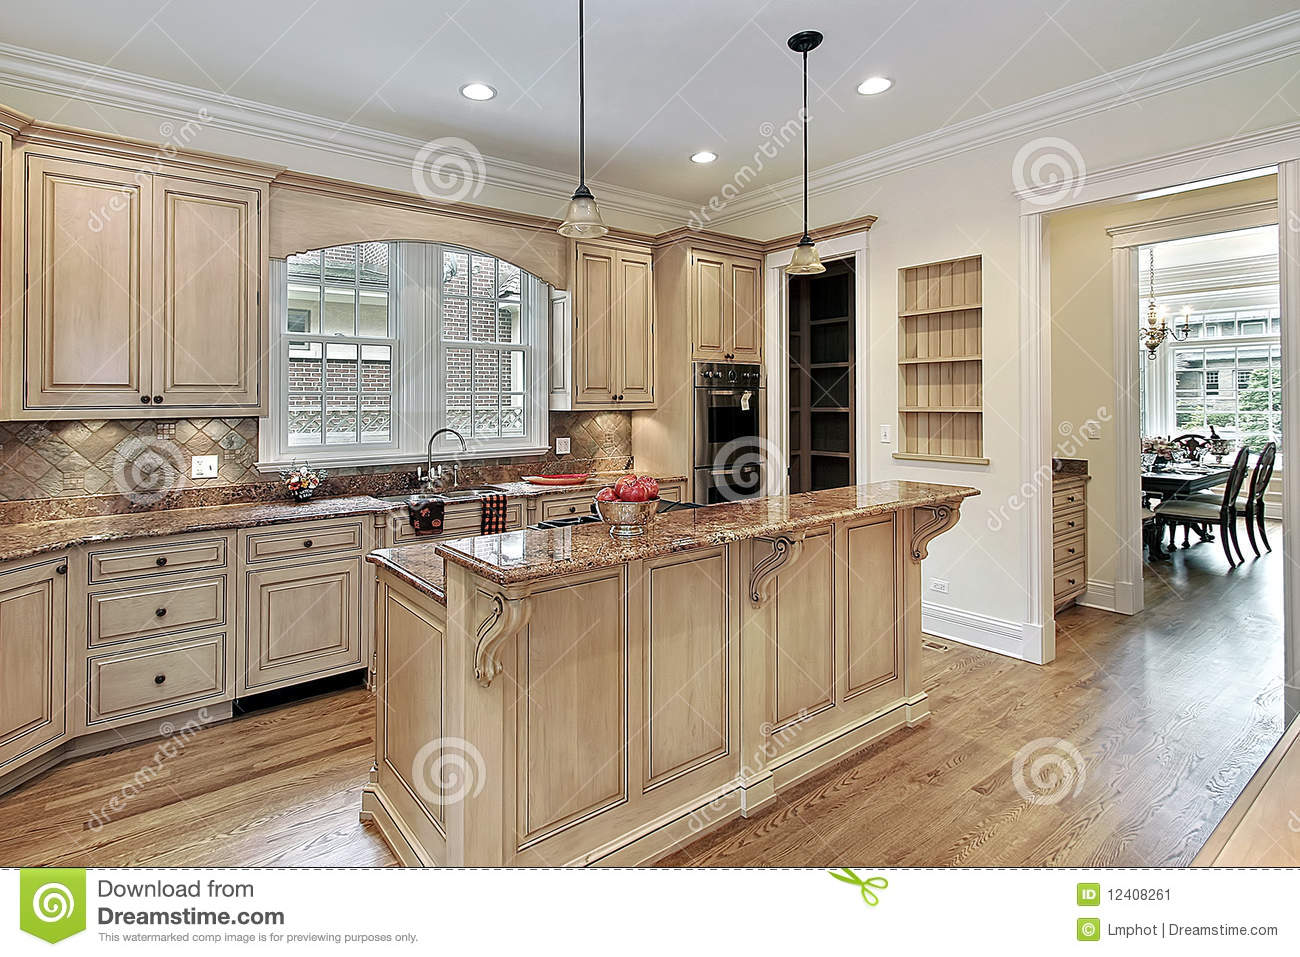 Kitchen with double-tiered island